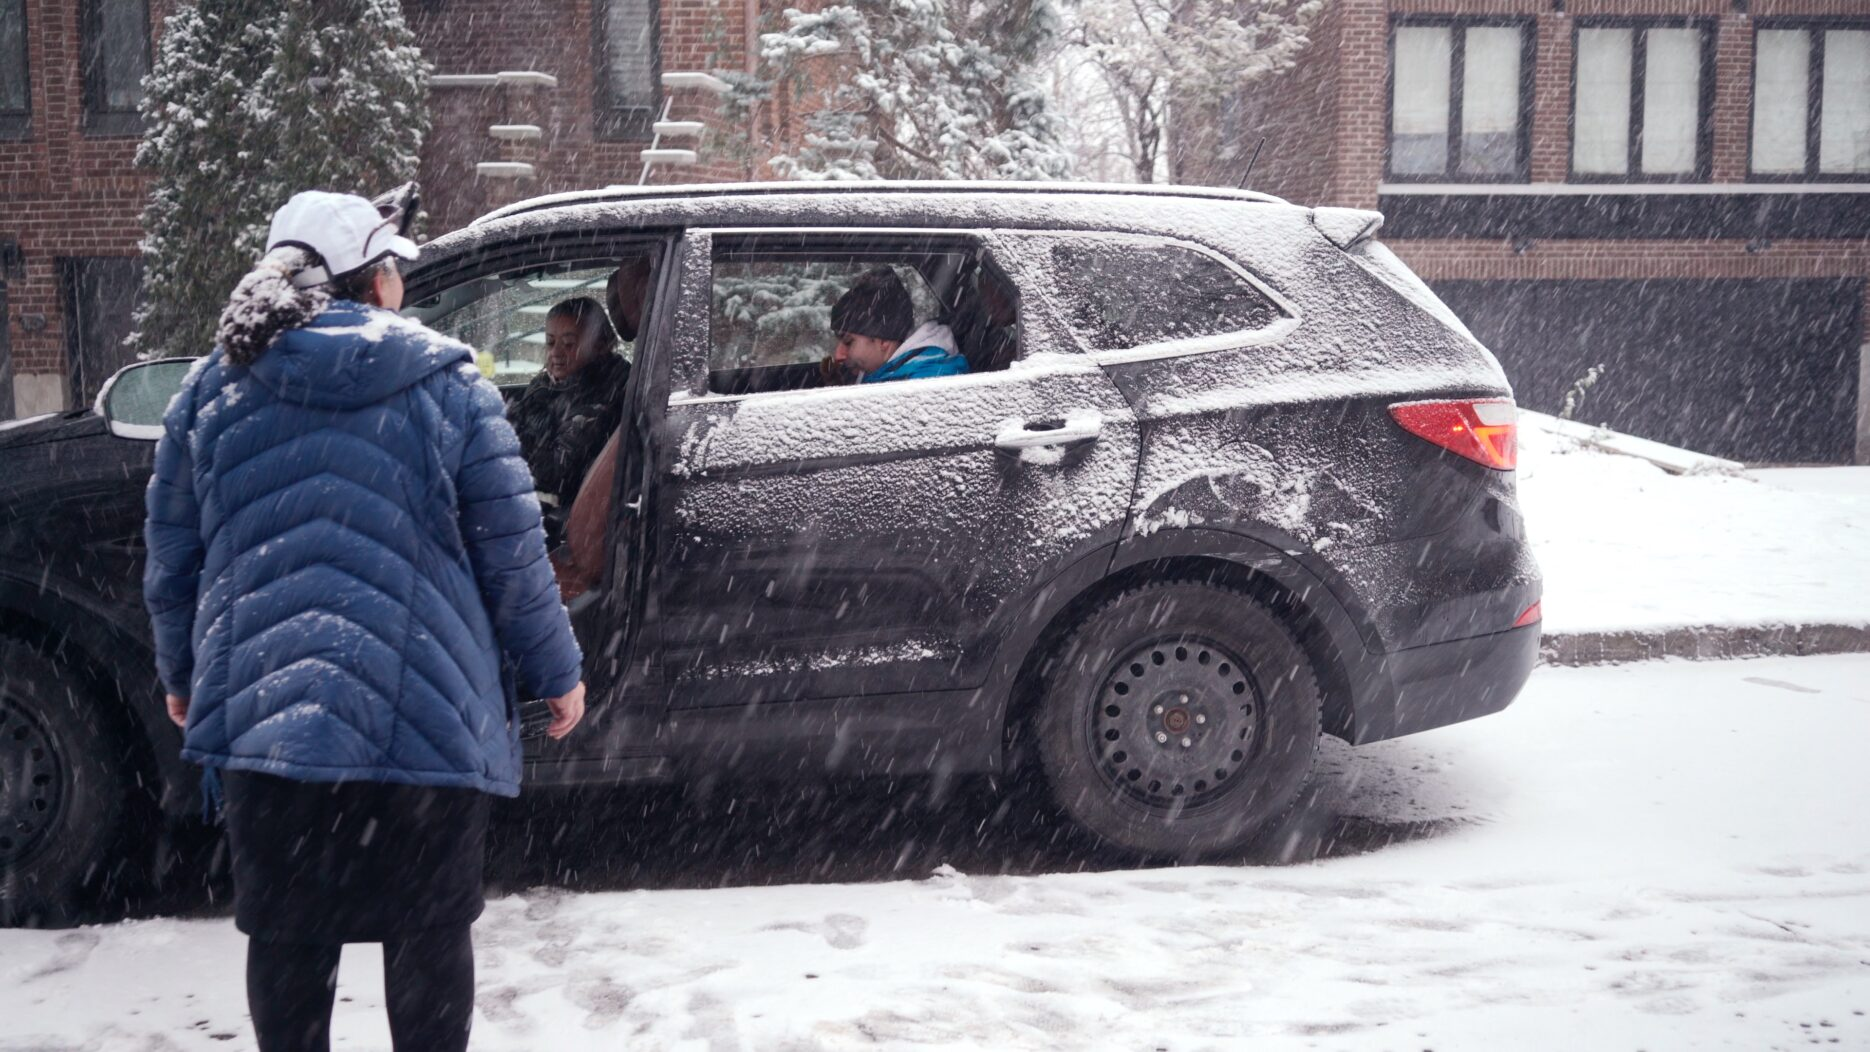 Snowy car with people